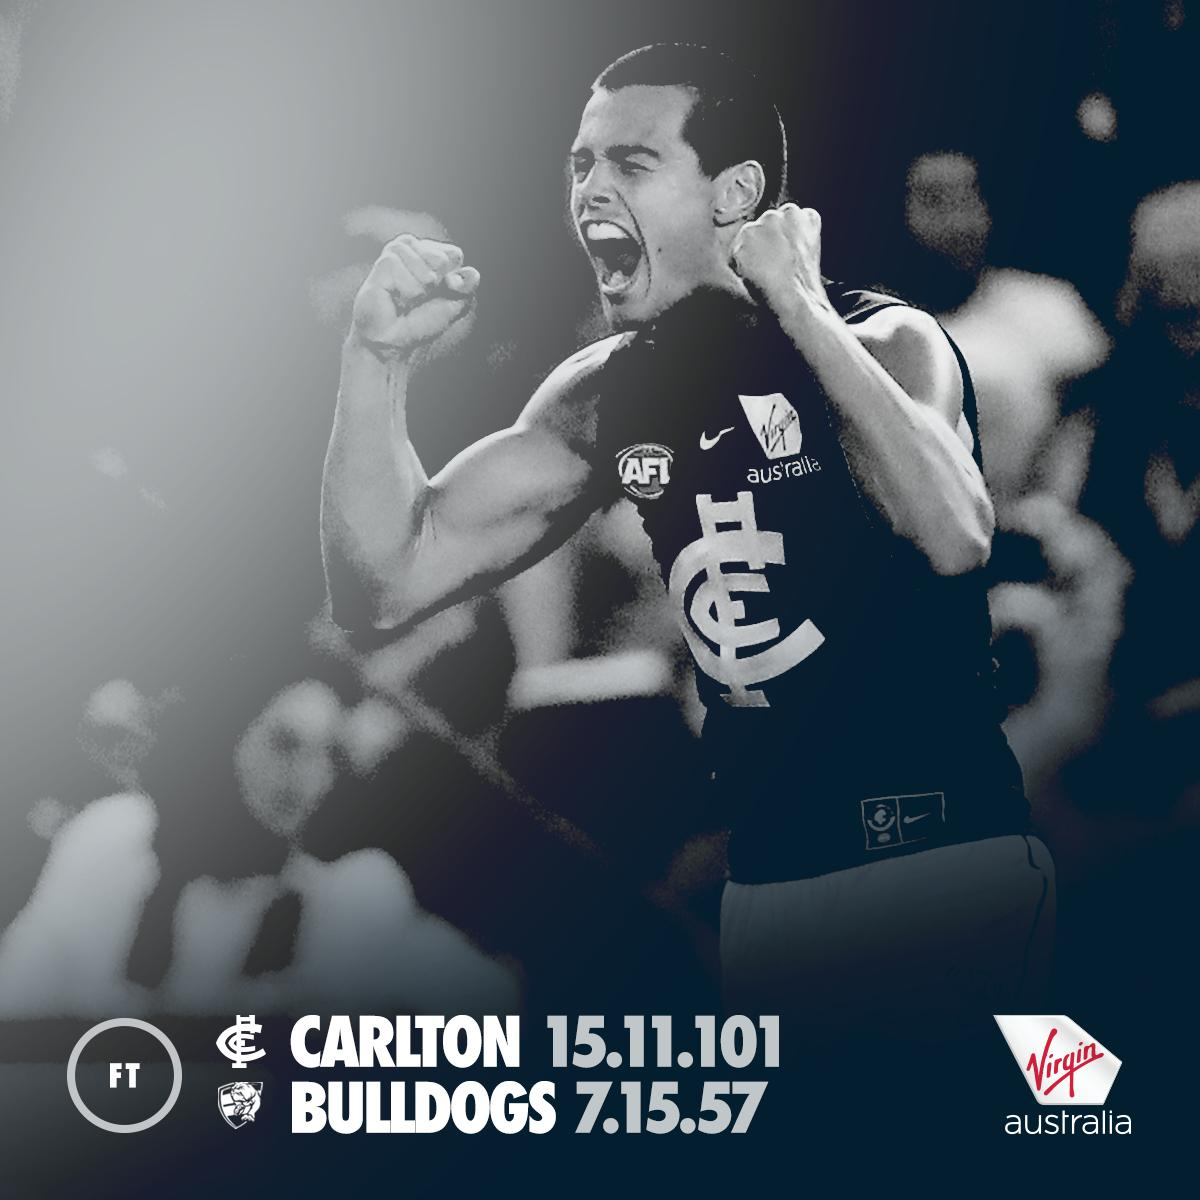 Carlton FC's photo on #AFLDogsBlues